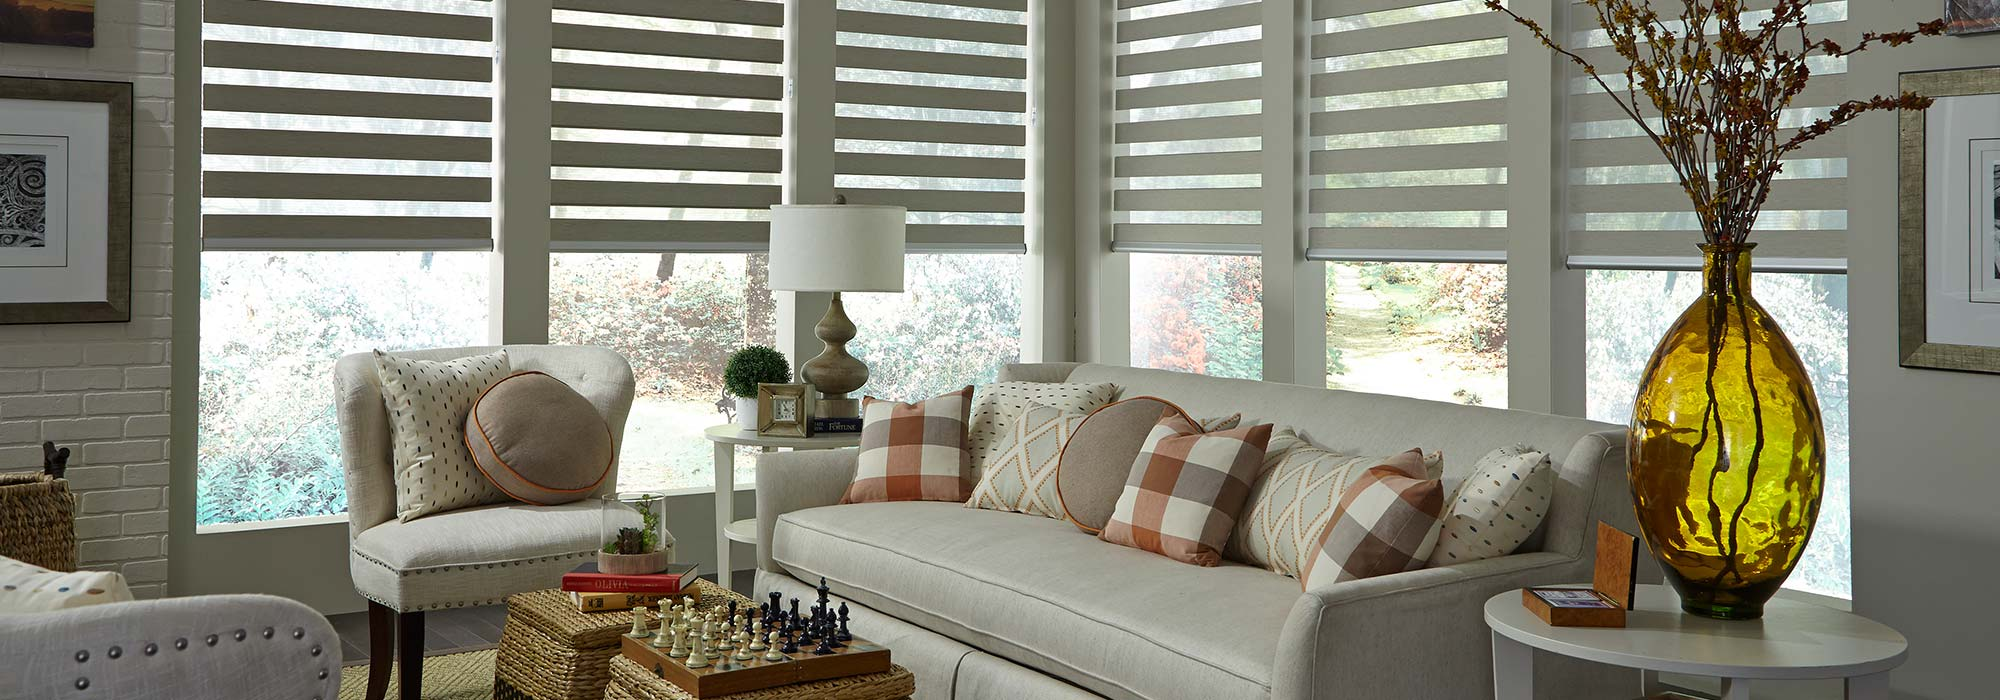 Best Living Room Blinds at Southwest in Phoenix